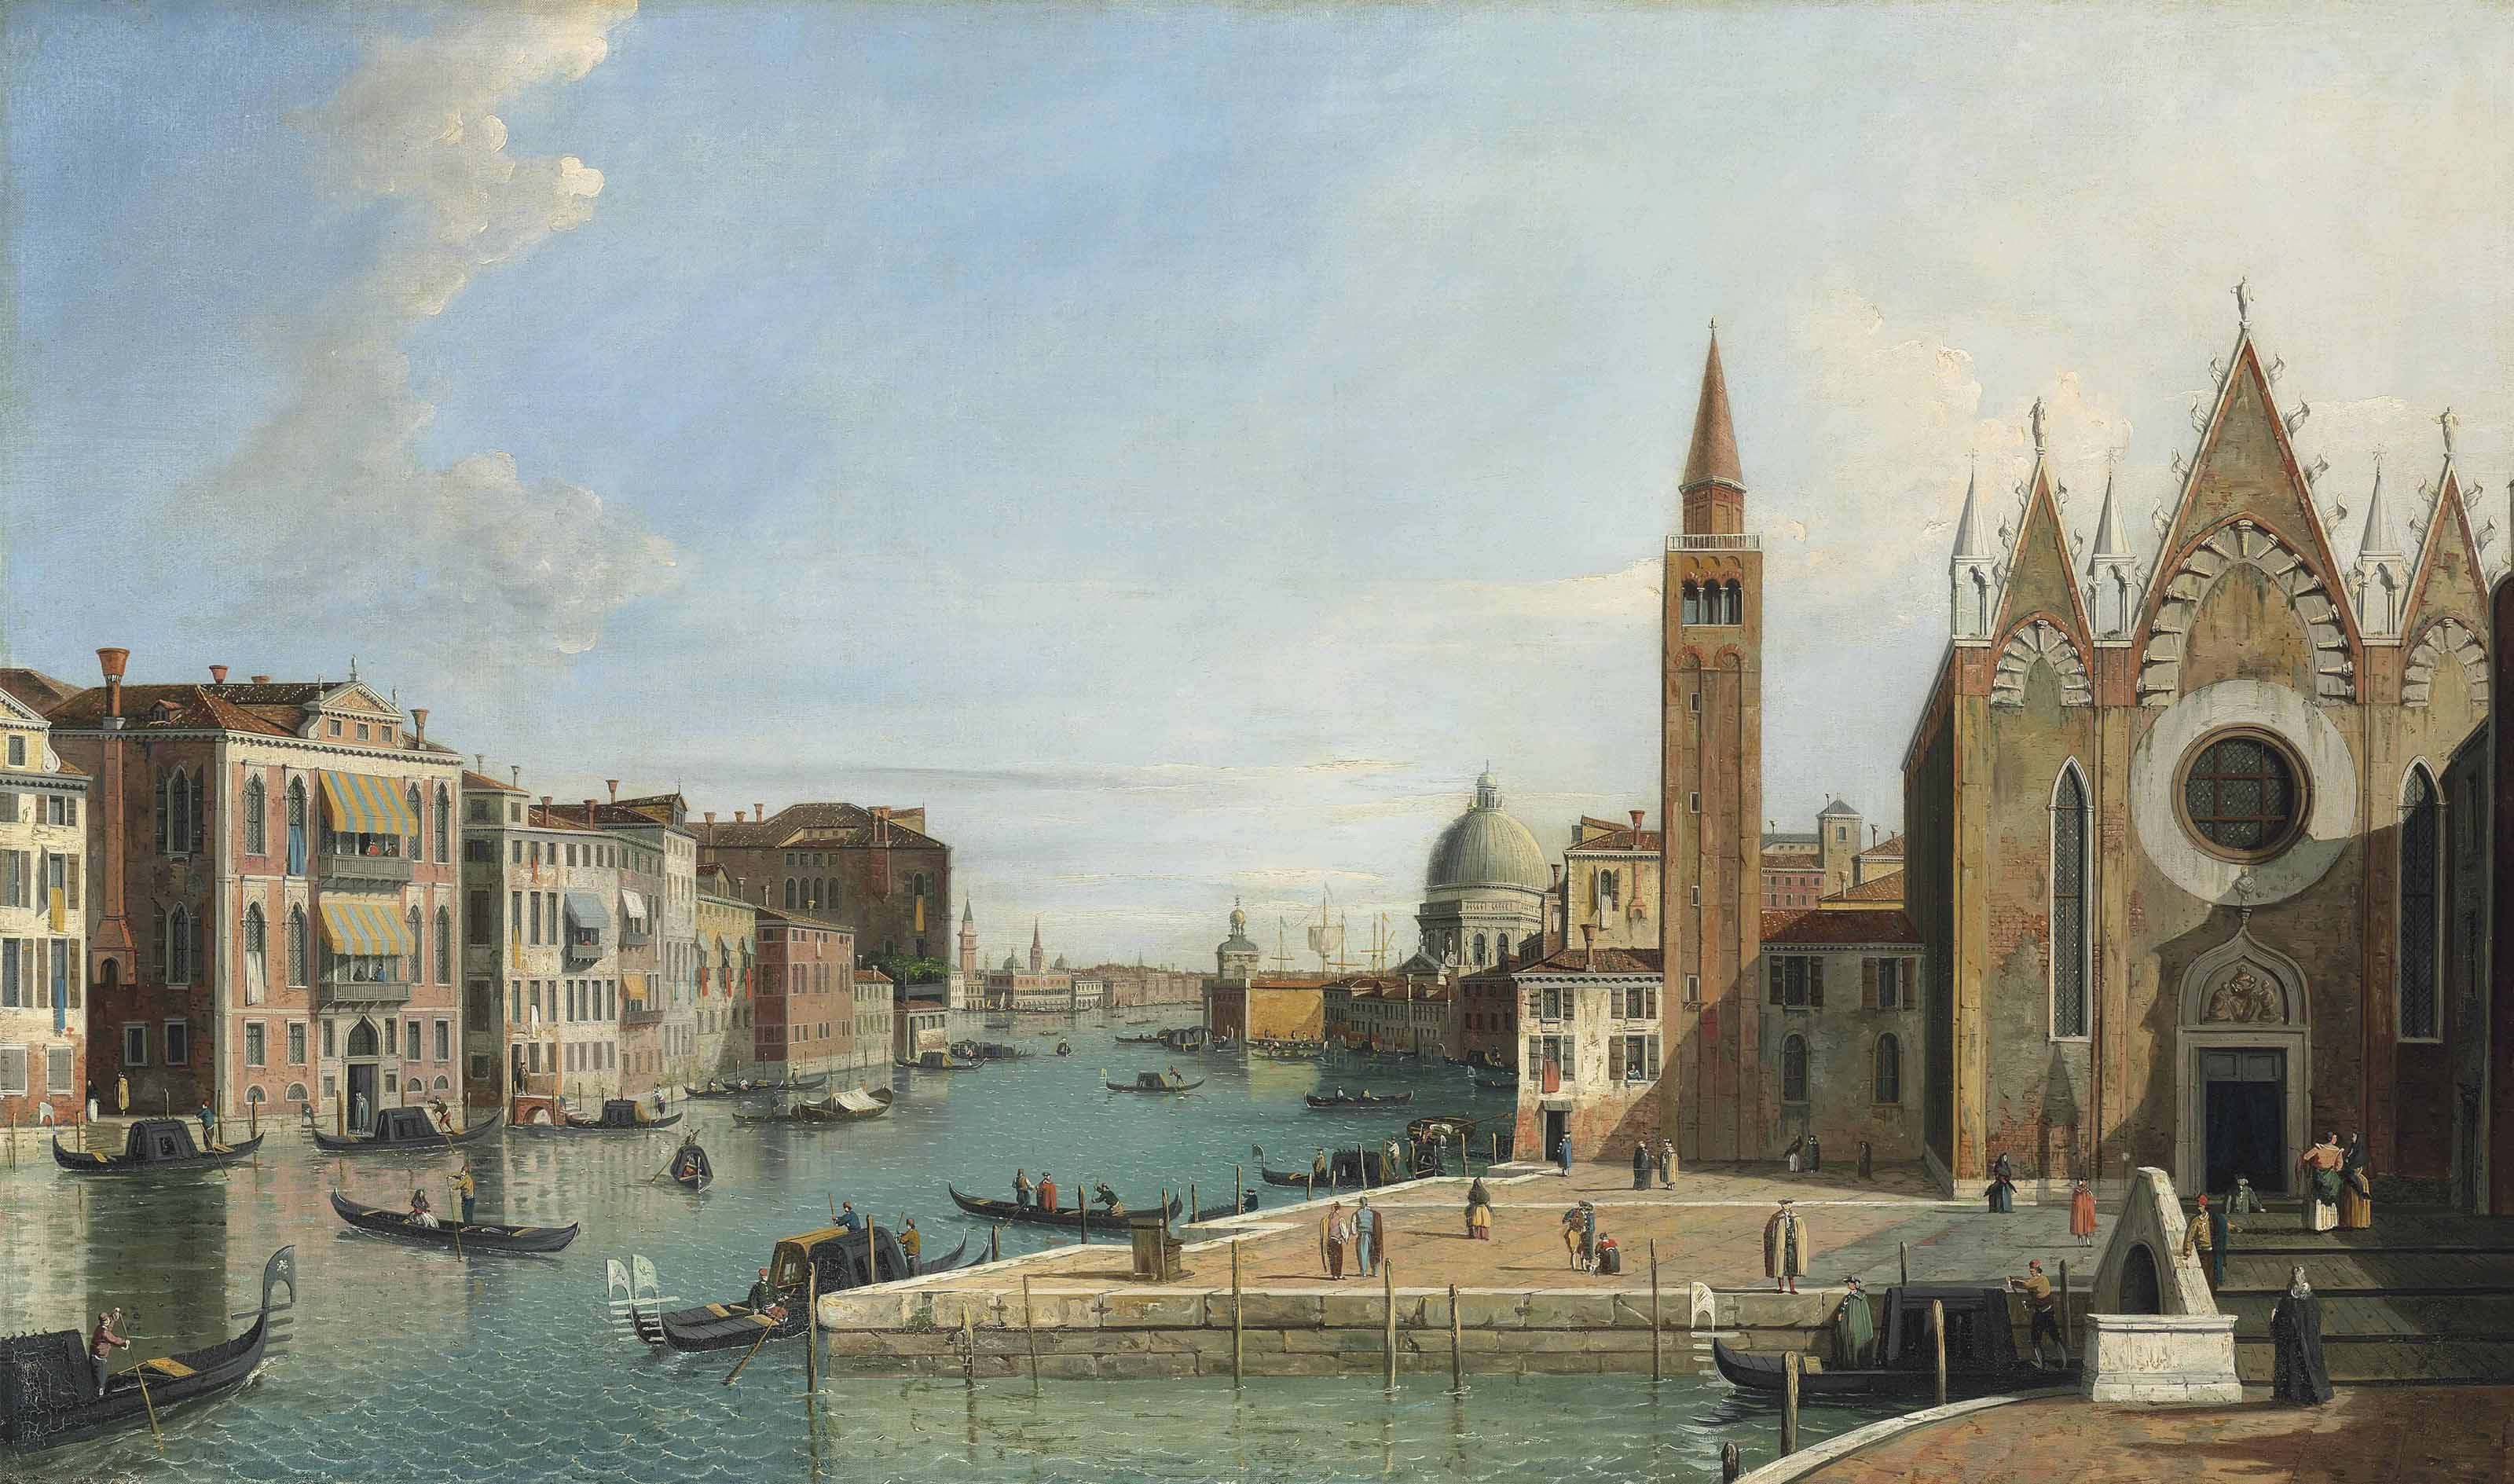 The Grand Canal, Venice, from Santa Maria della Carità, looking towards the Bacino di San Marco